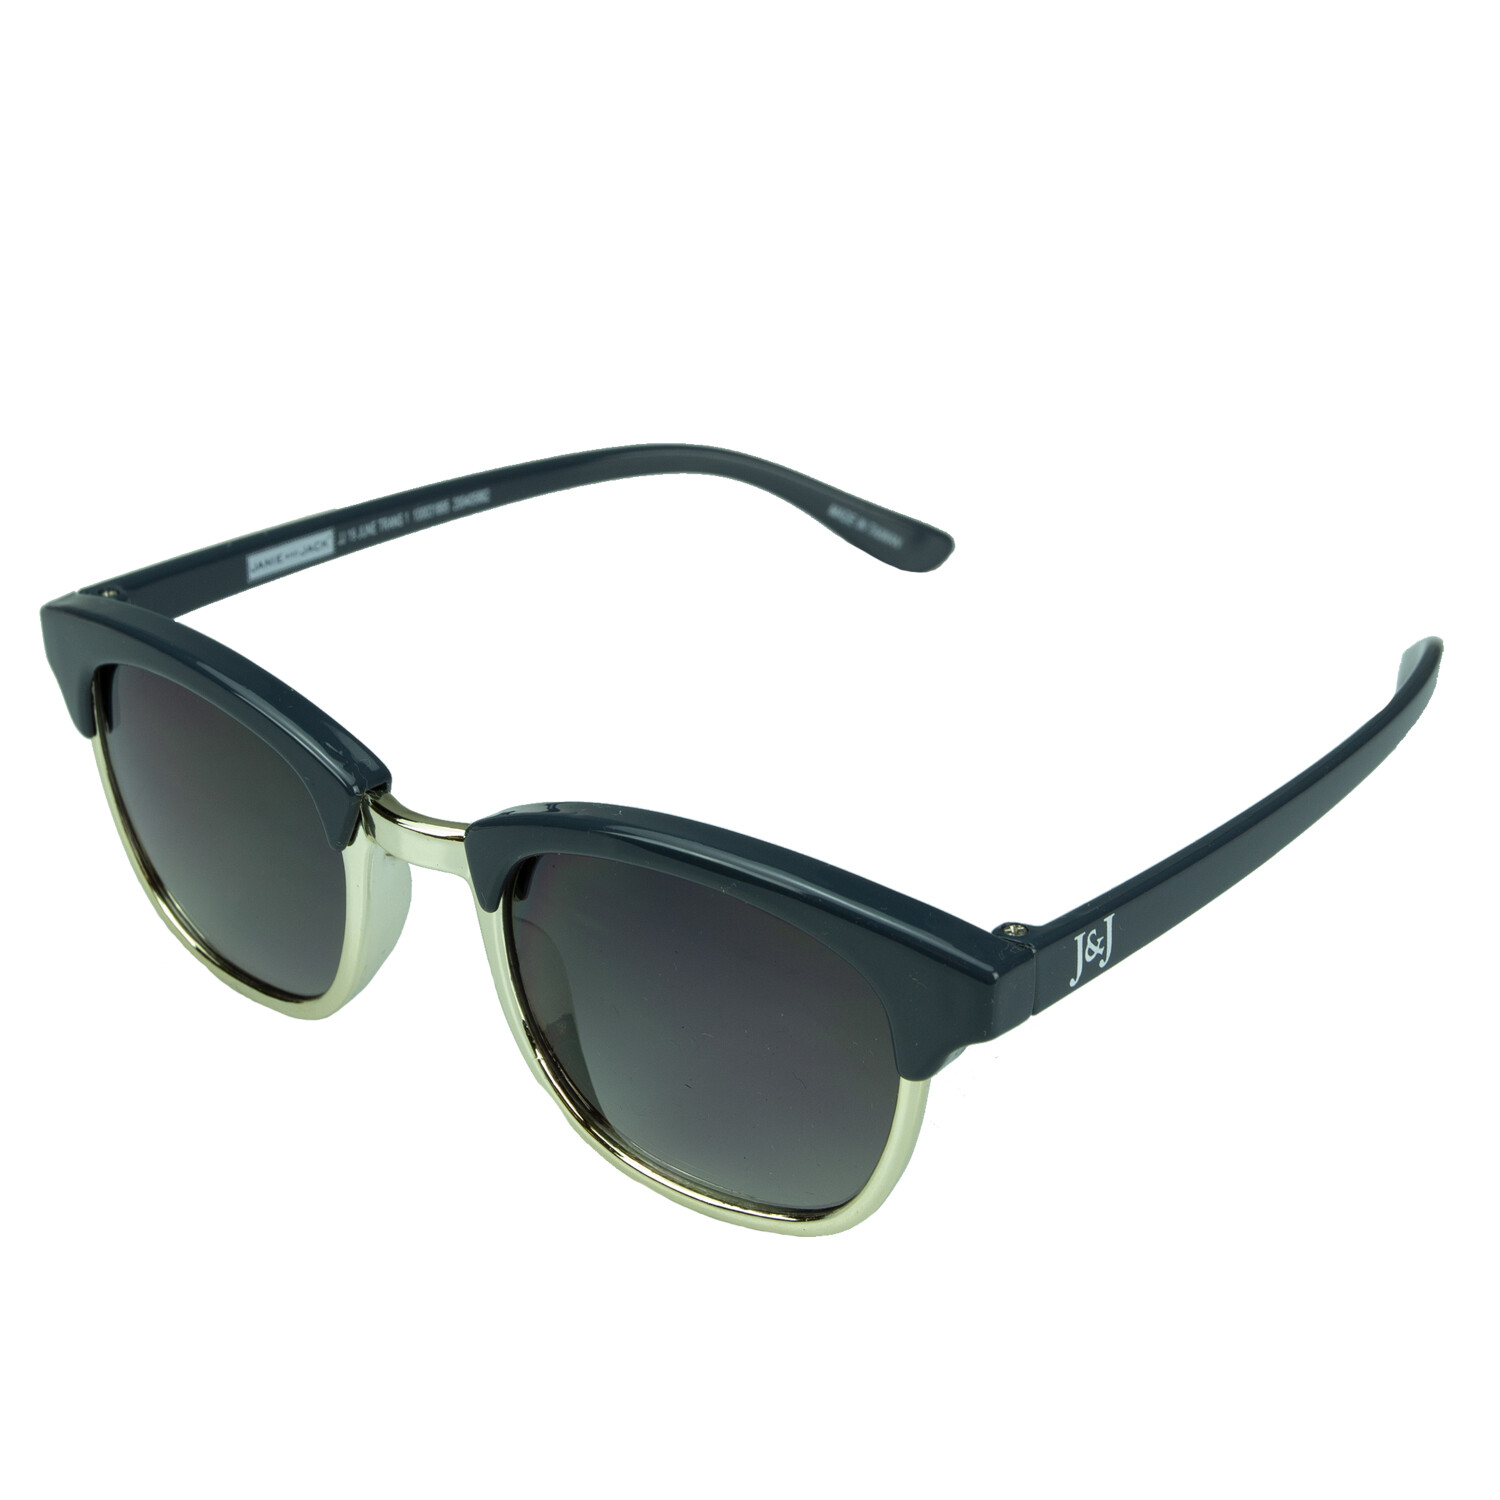 Janie And Jack Boy's Vintage Inspired Sunglasses 4 Up 200405882 Black Butterfly